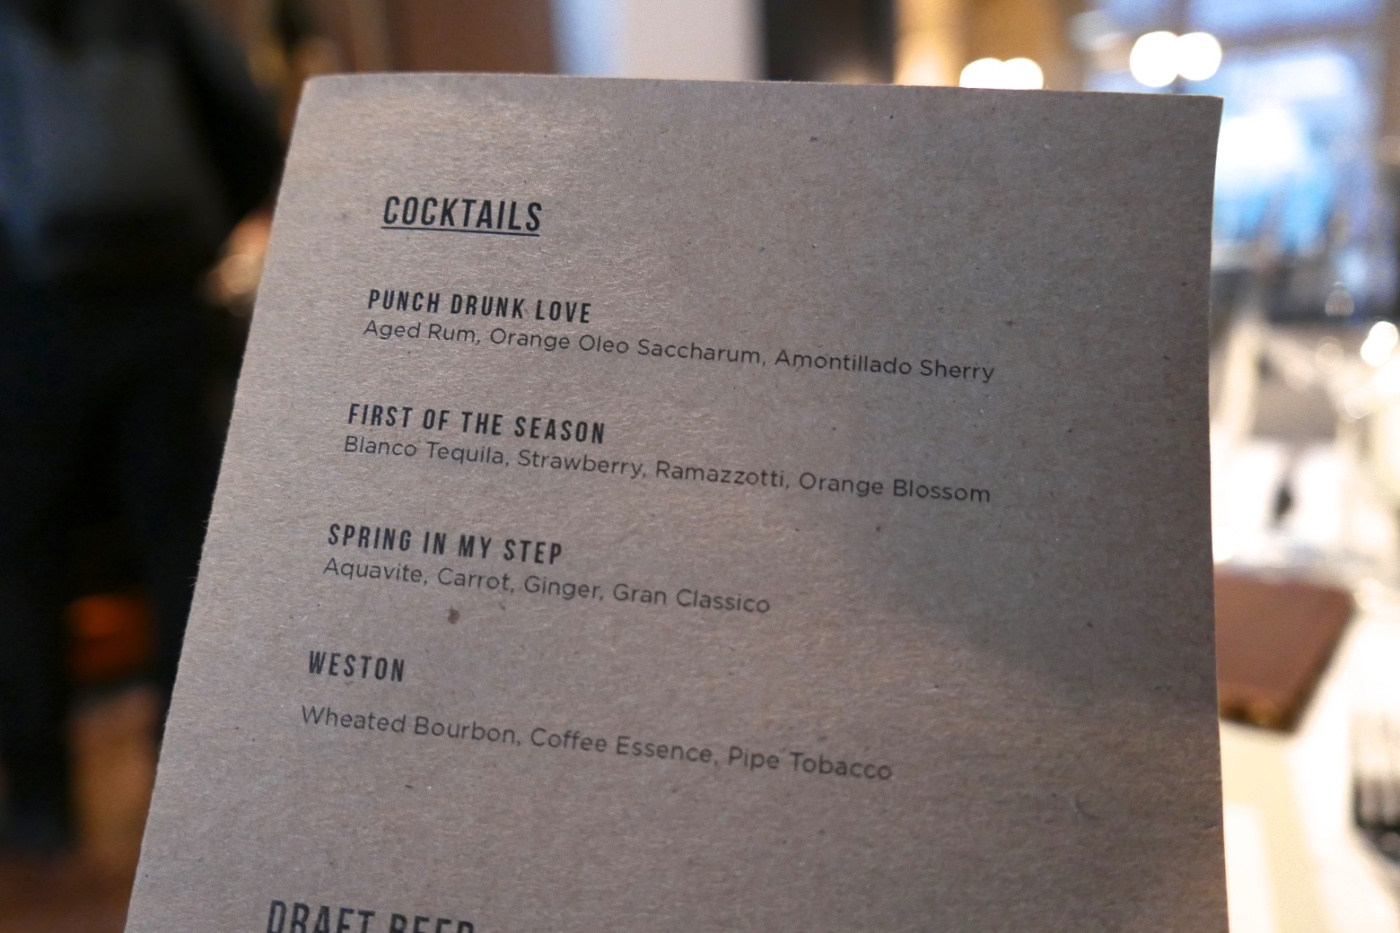 Cocktails at Steadfast